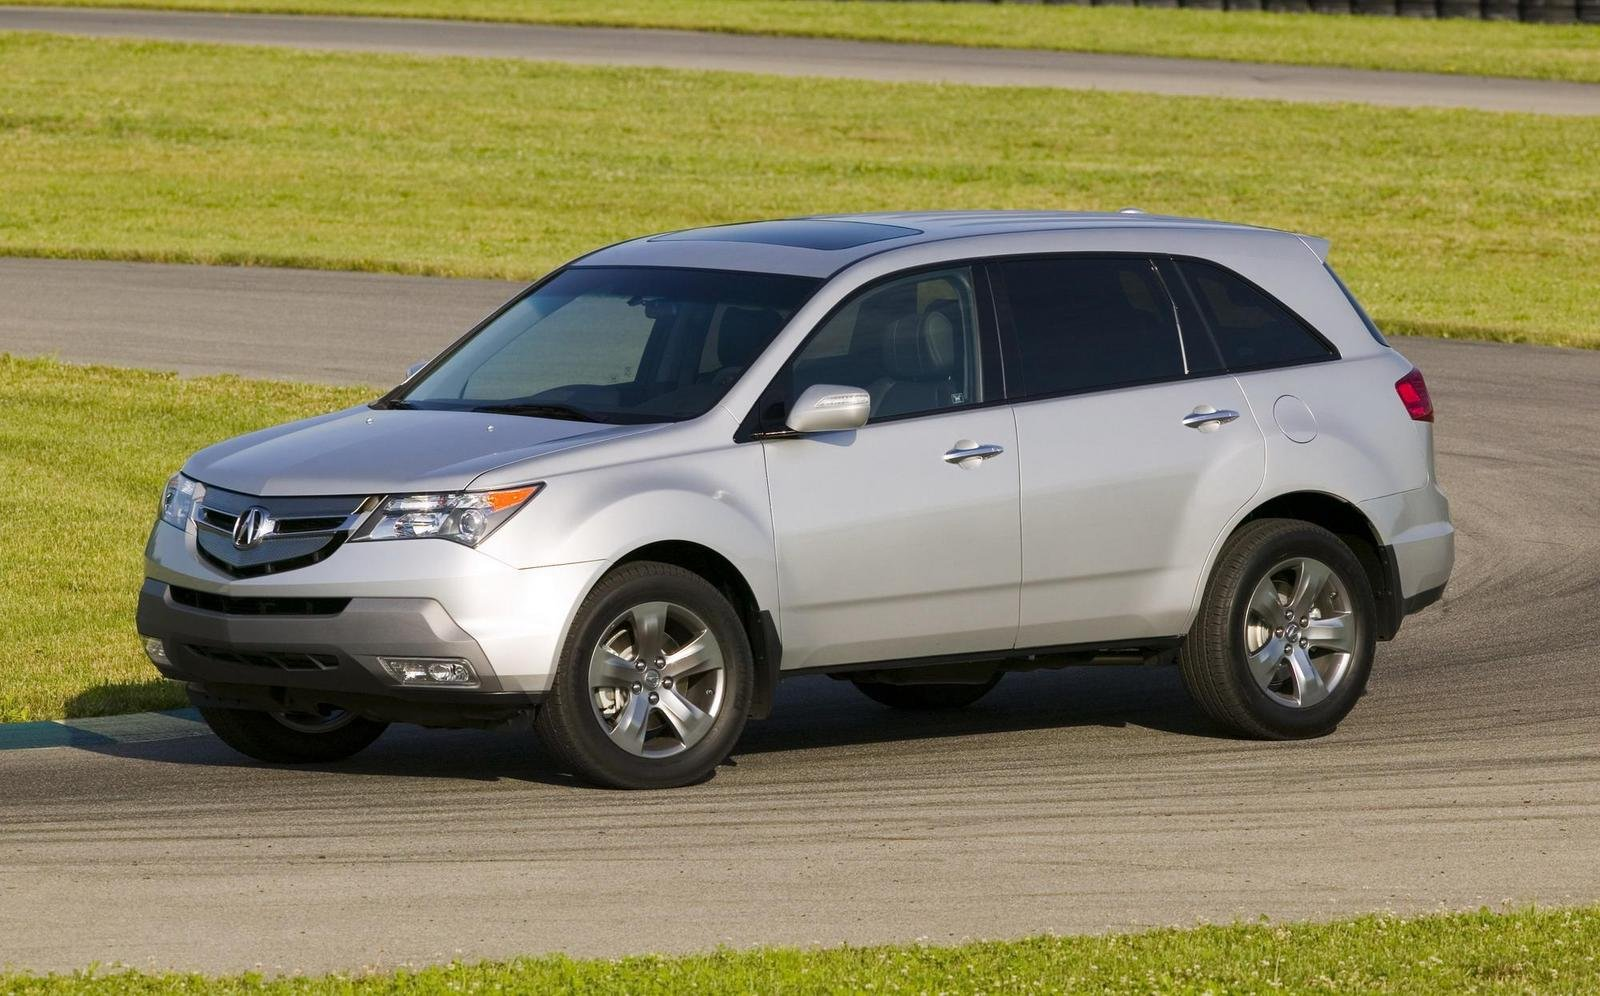 2009 acura mdx picture 299816 car review top speed. Black Bedroom Furniture Sets. Home Design Ideas